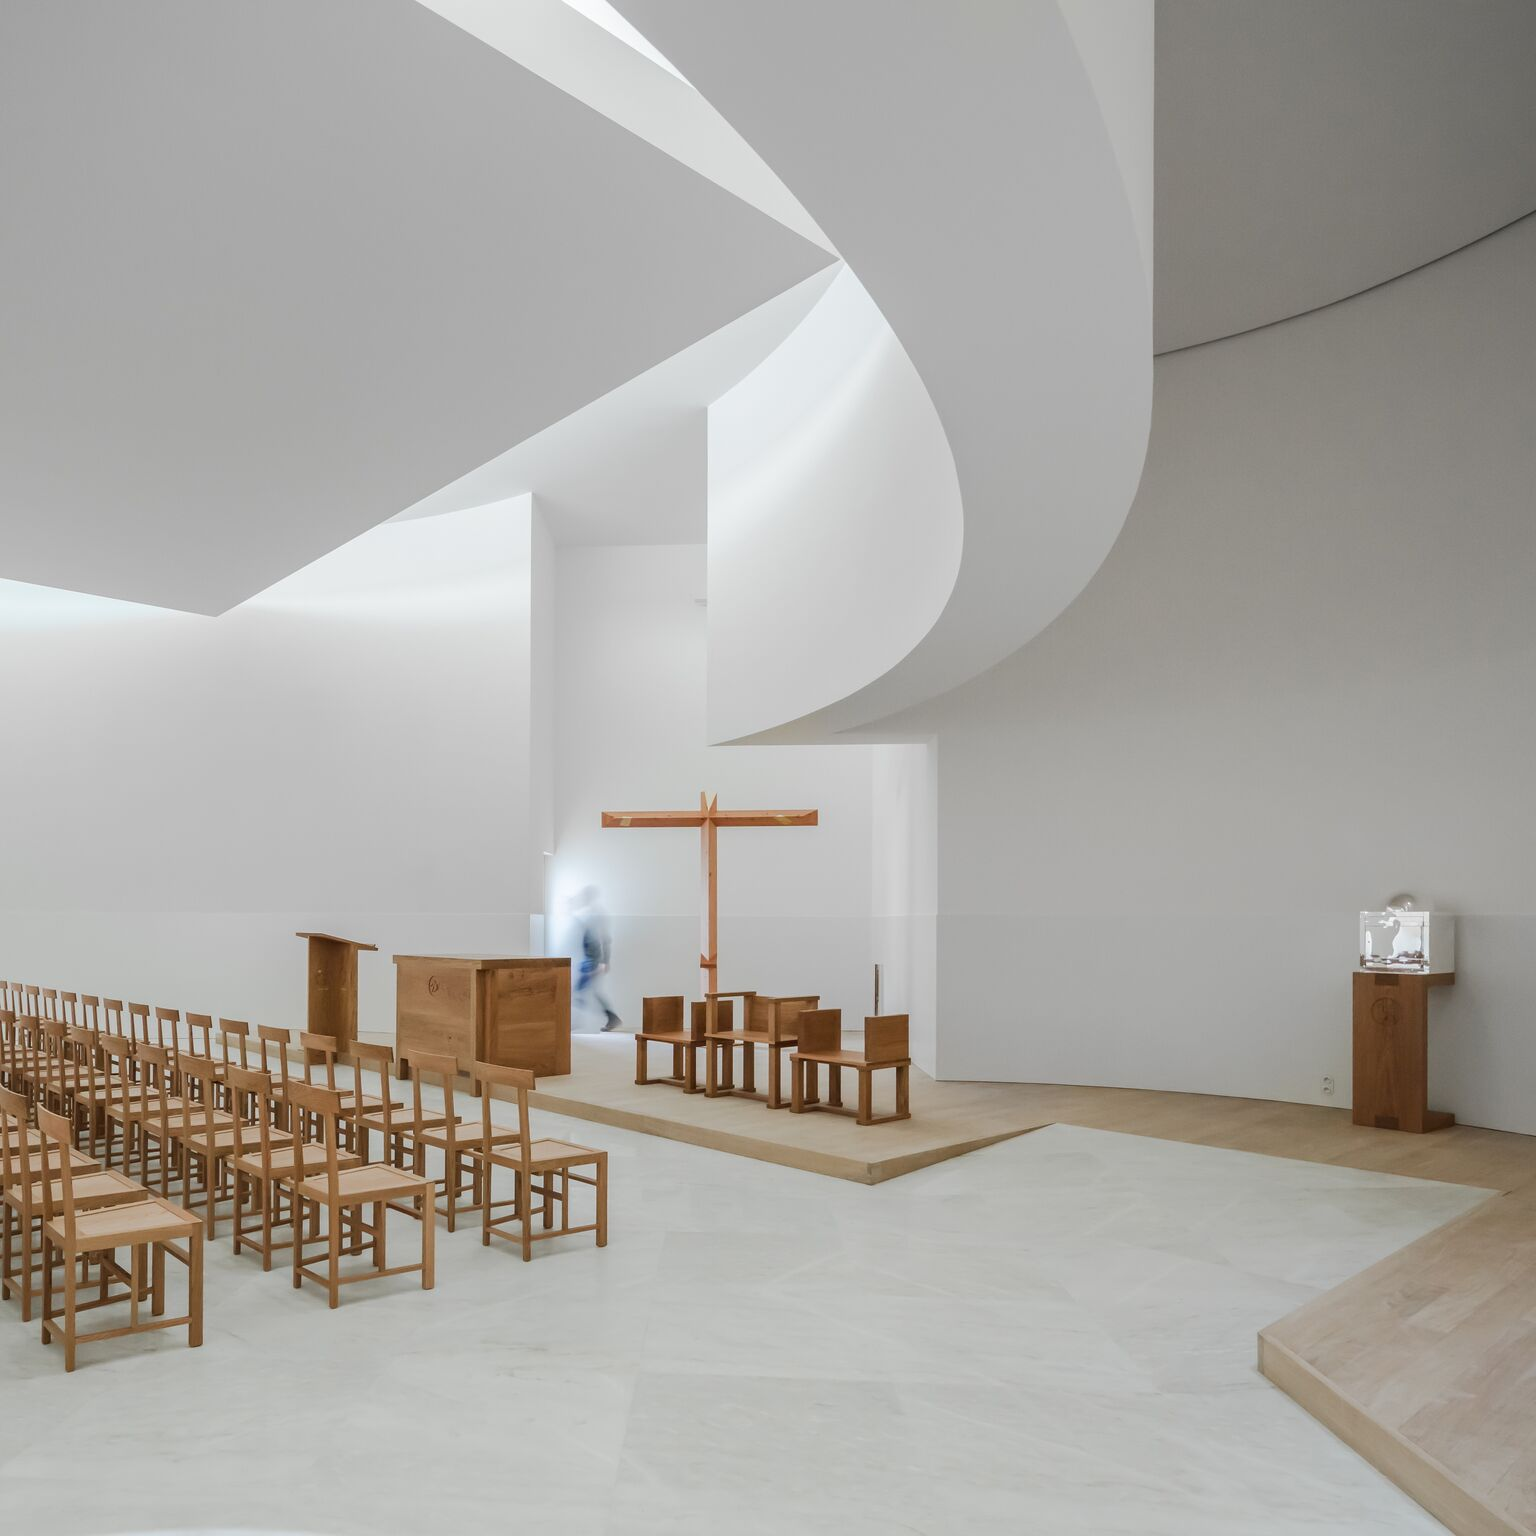 7_Alvaro Siza Vieira_New Church of Saint-Jacques de la Lande_Inspirationist